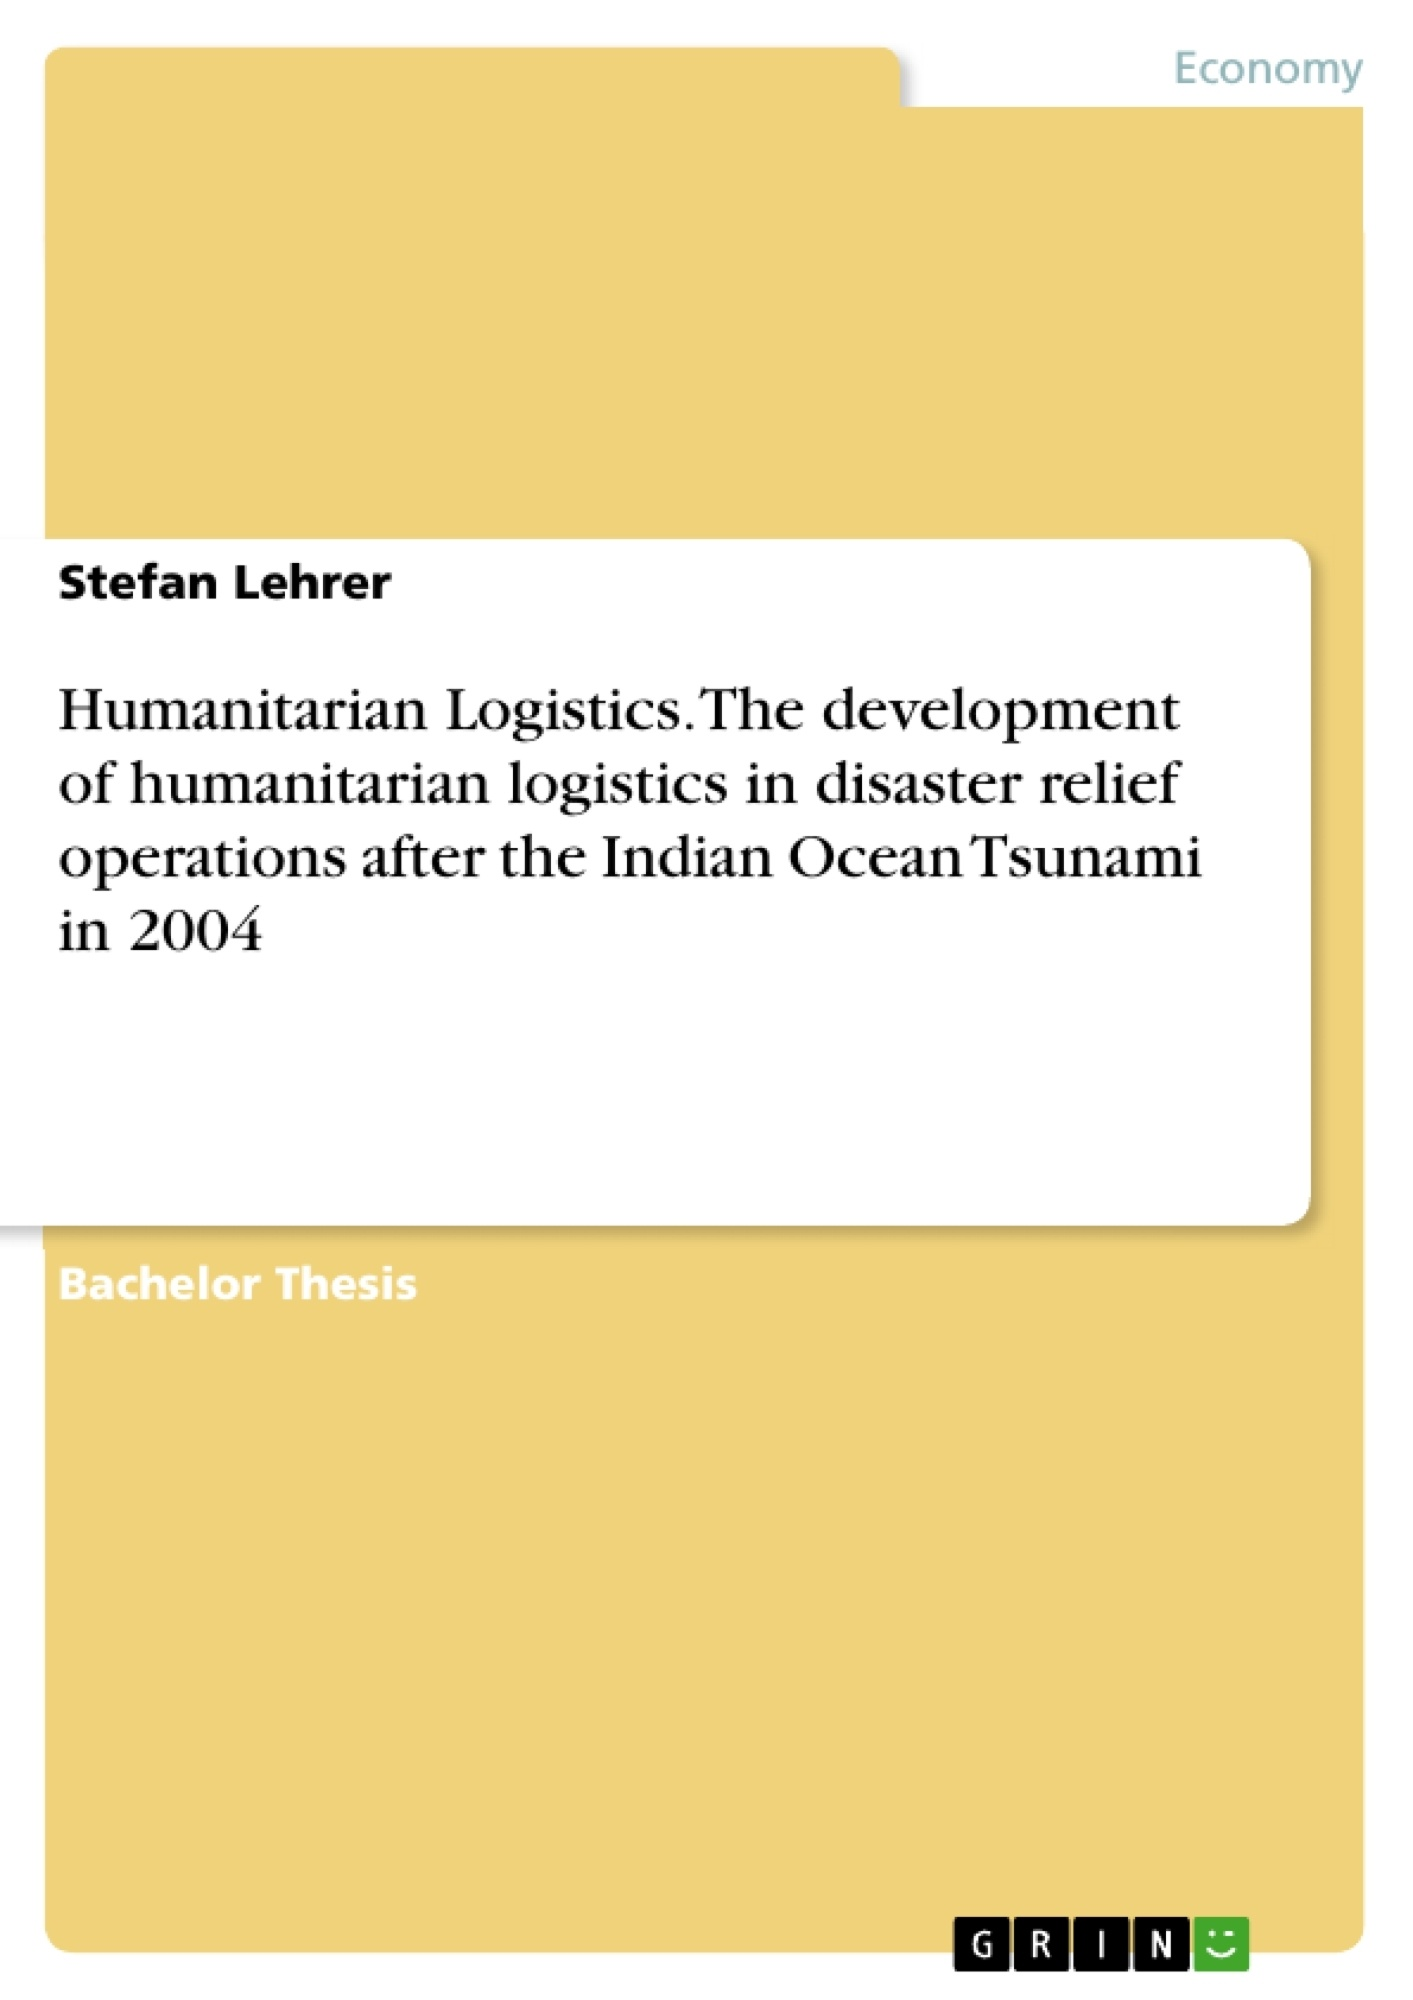 Title: Humanitarian Logistics. The development of humanitarian logistics in disaster relief operations after the Indian Ocean Tsunami in 2004